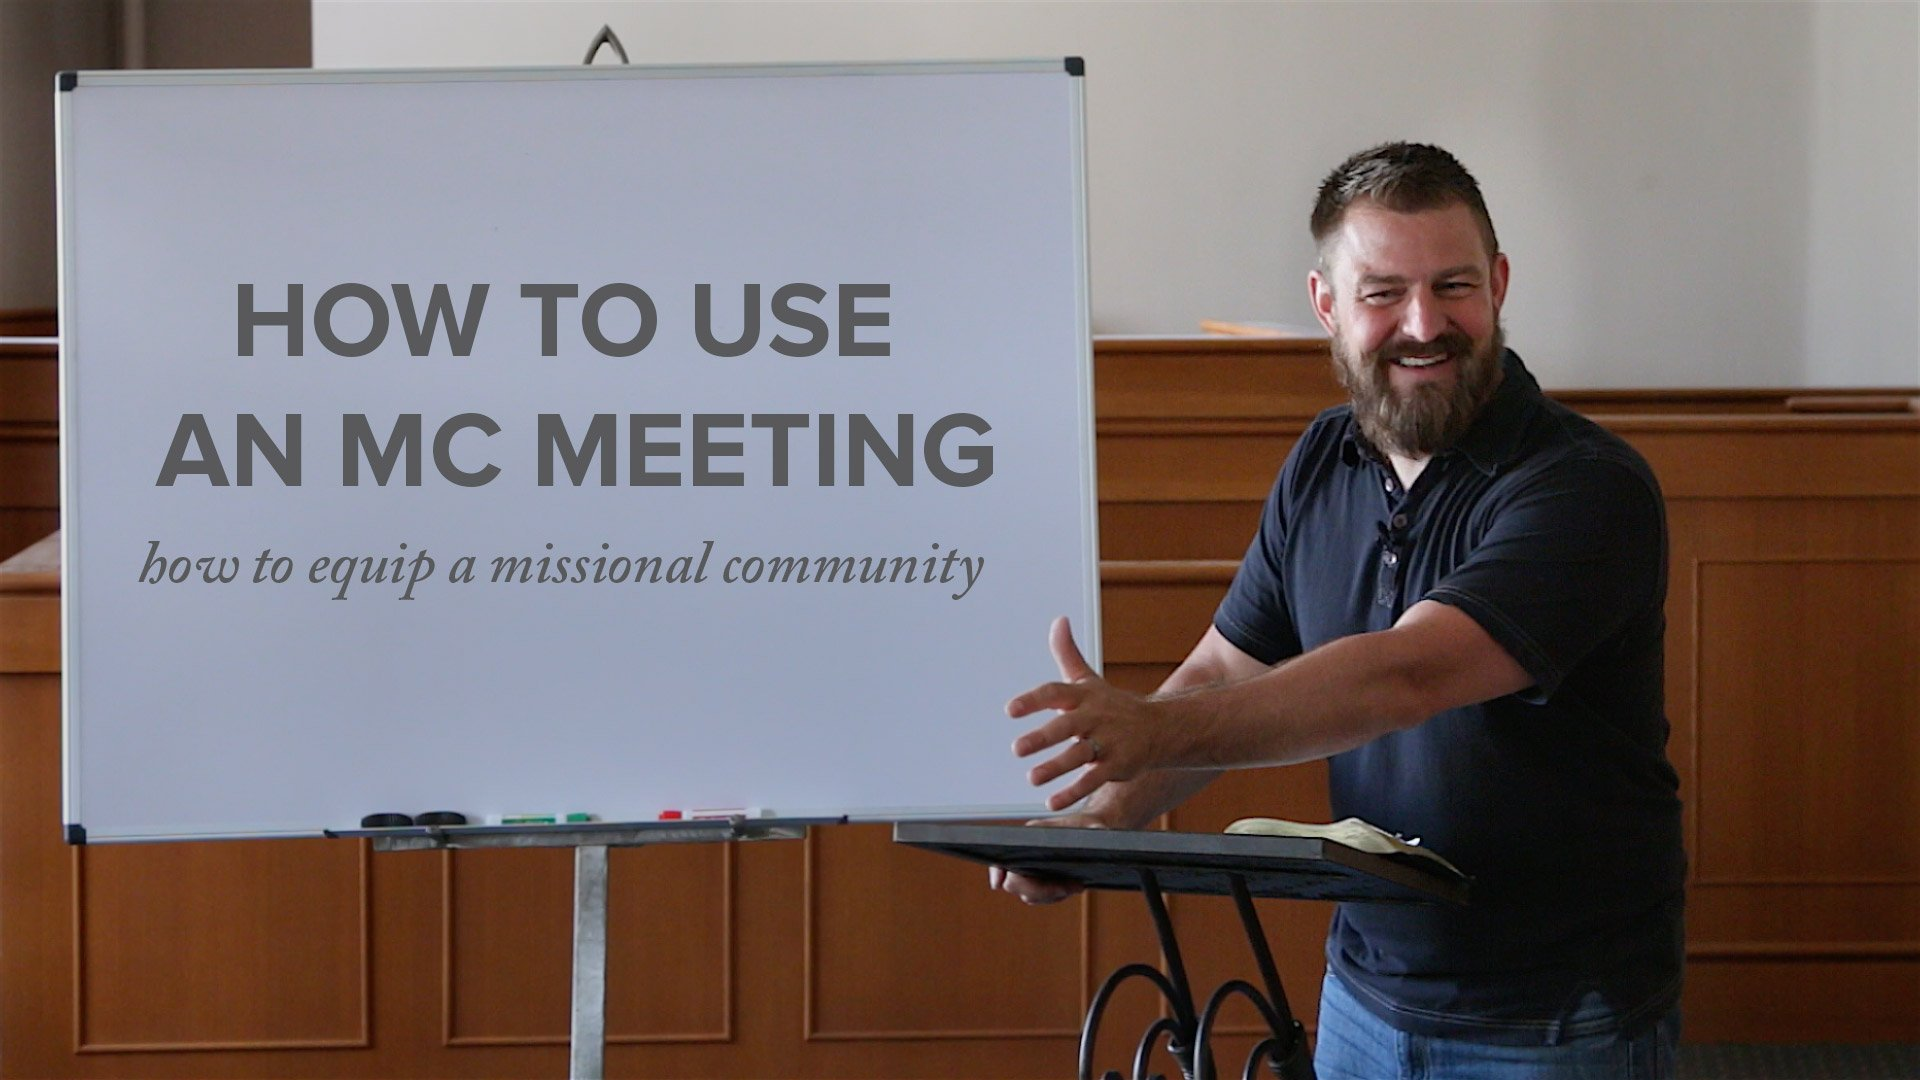 How to Use an MC Meeting